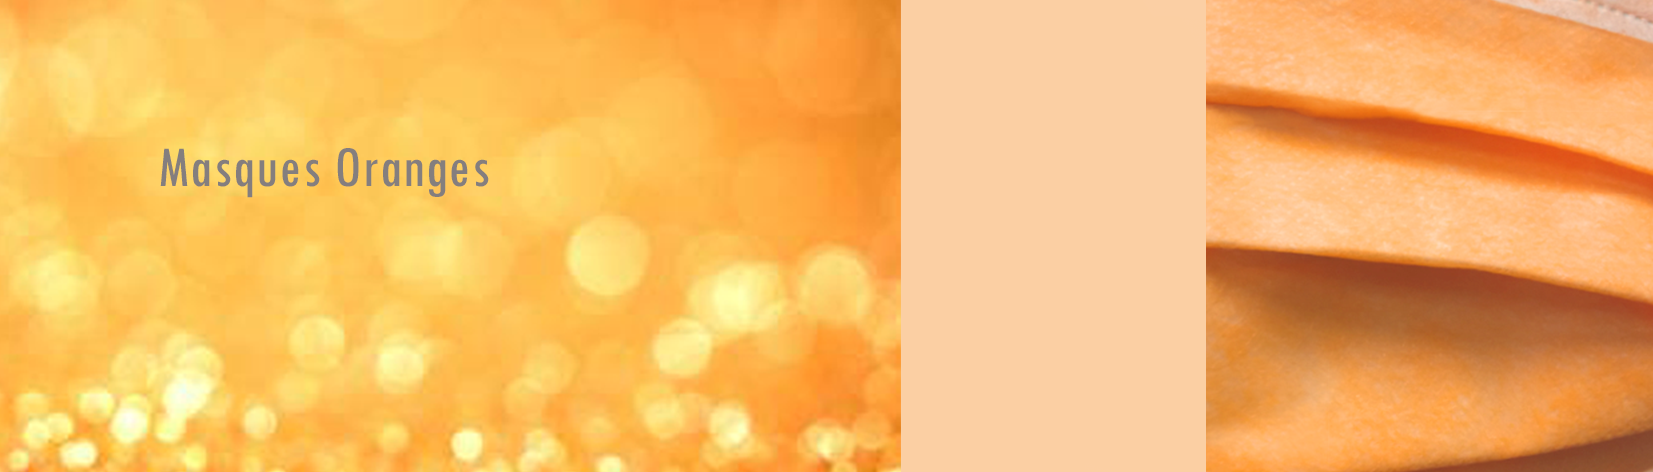 Masque couleur orange.png